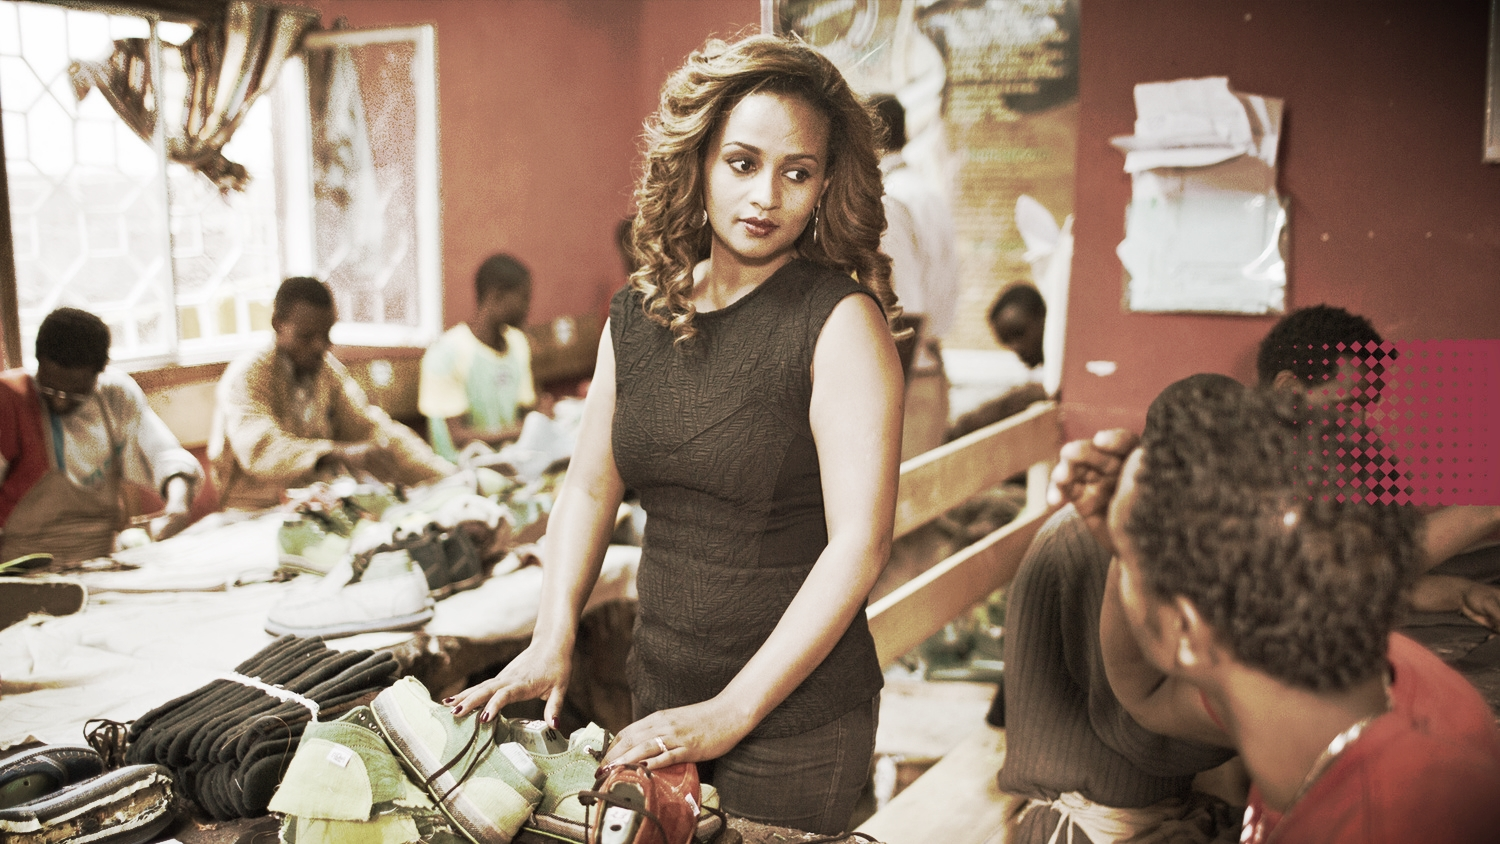 3009143-poster-1280-176-feature-number-62-bethlehem-tilahun-alemu-the-100-most-creative-people-in-business.jpg